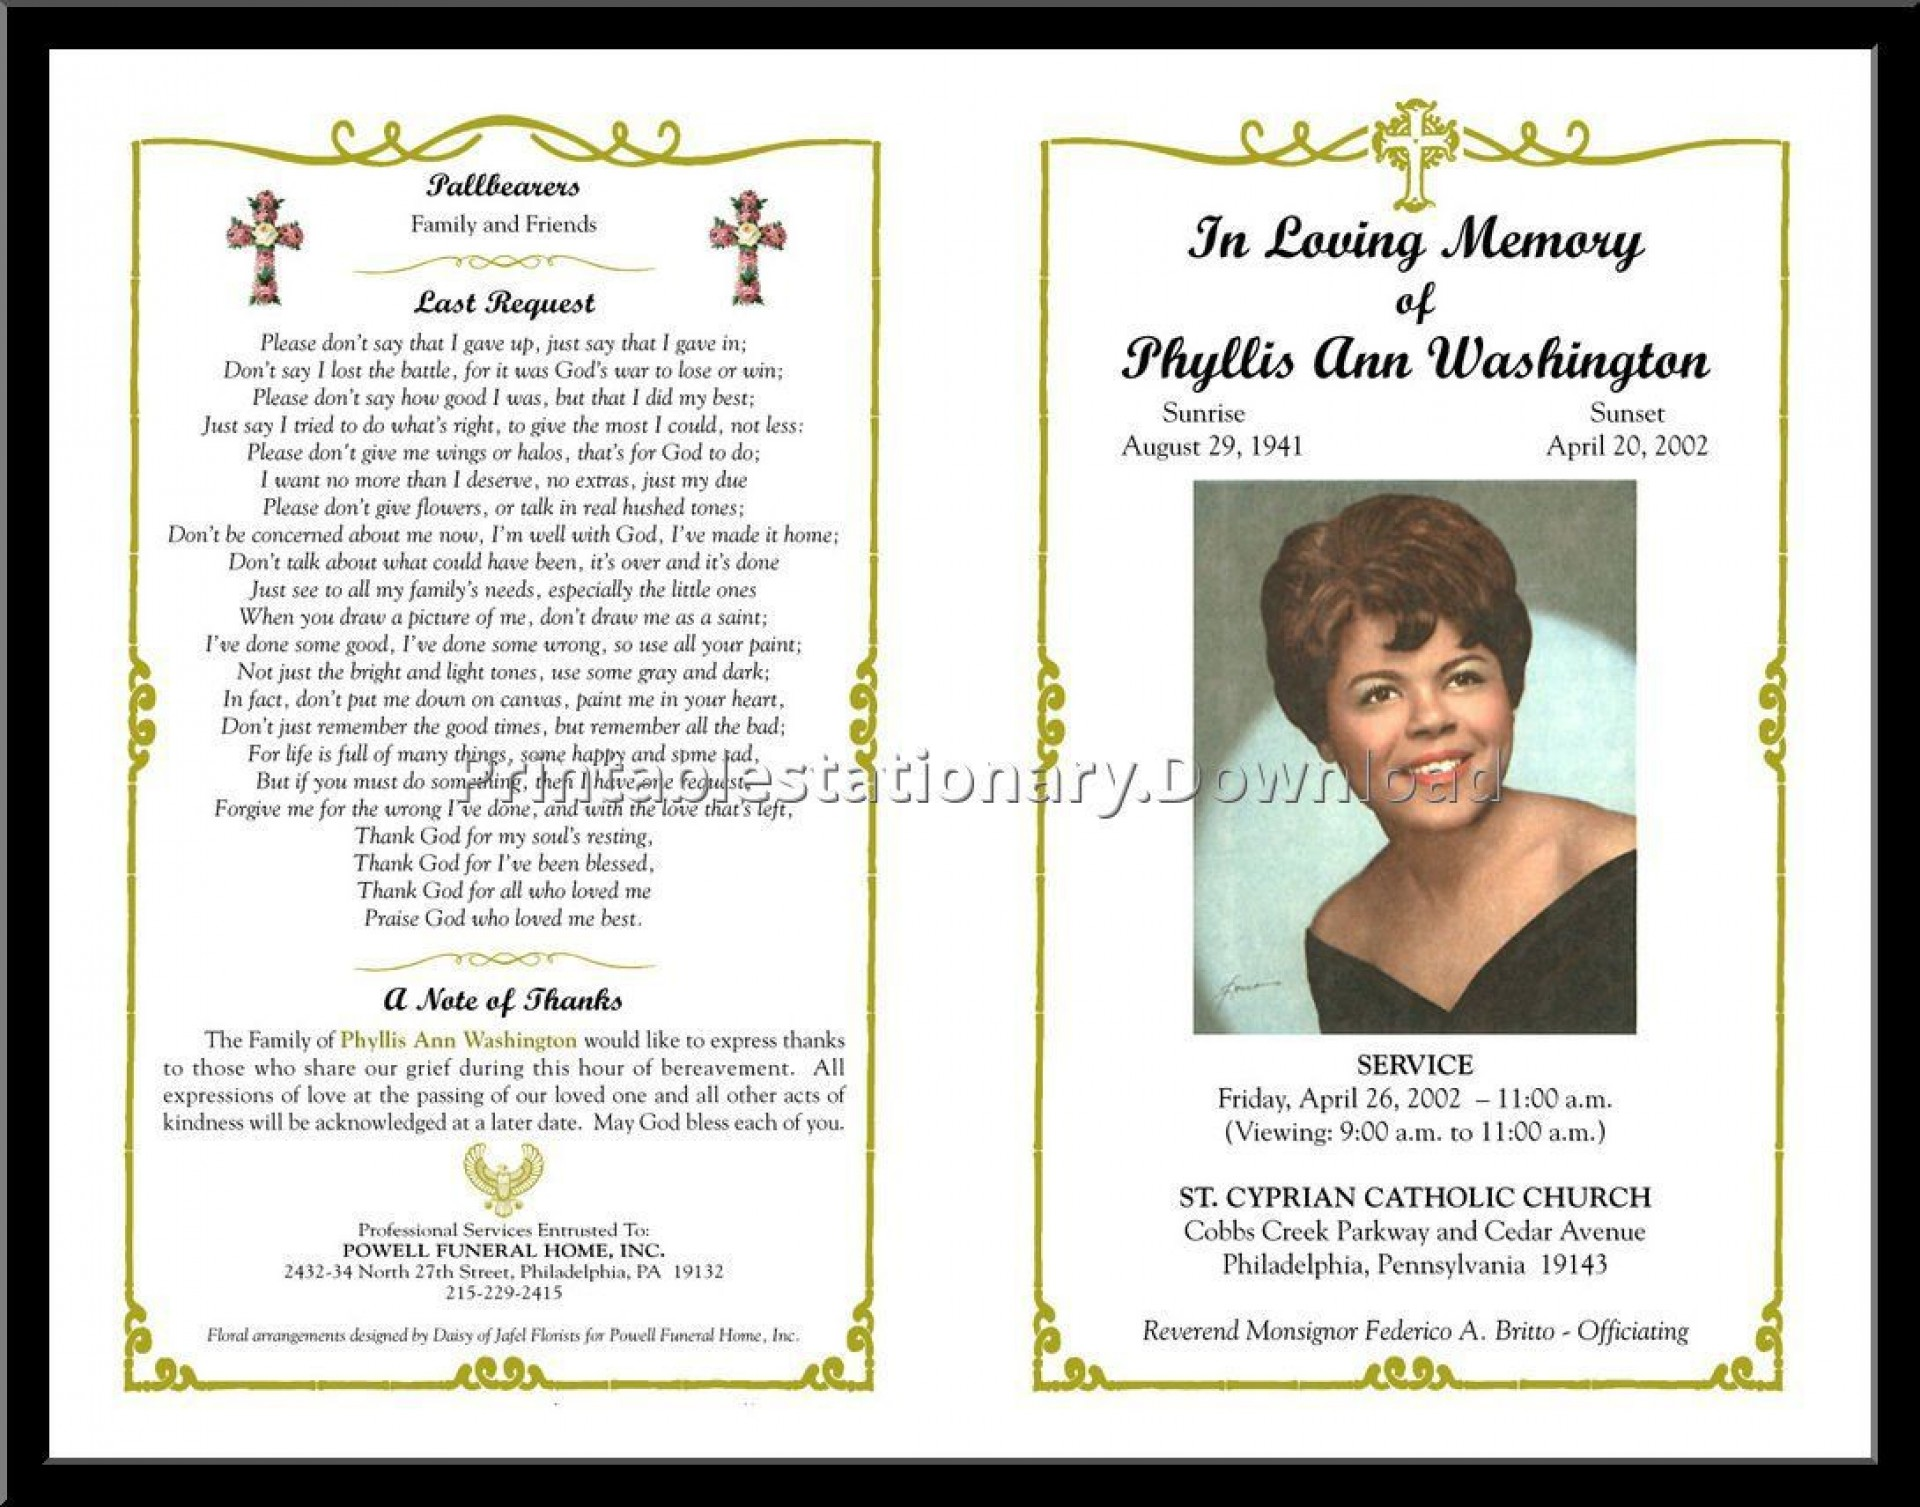 000 Awesome Memorial Card Template Free Download Highest Quality 1920